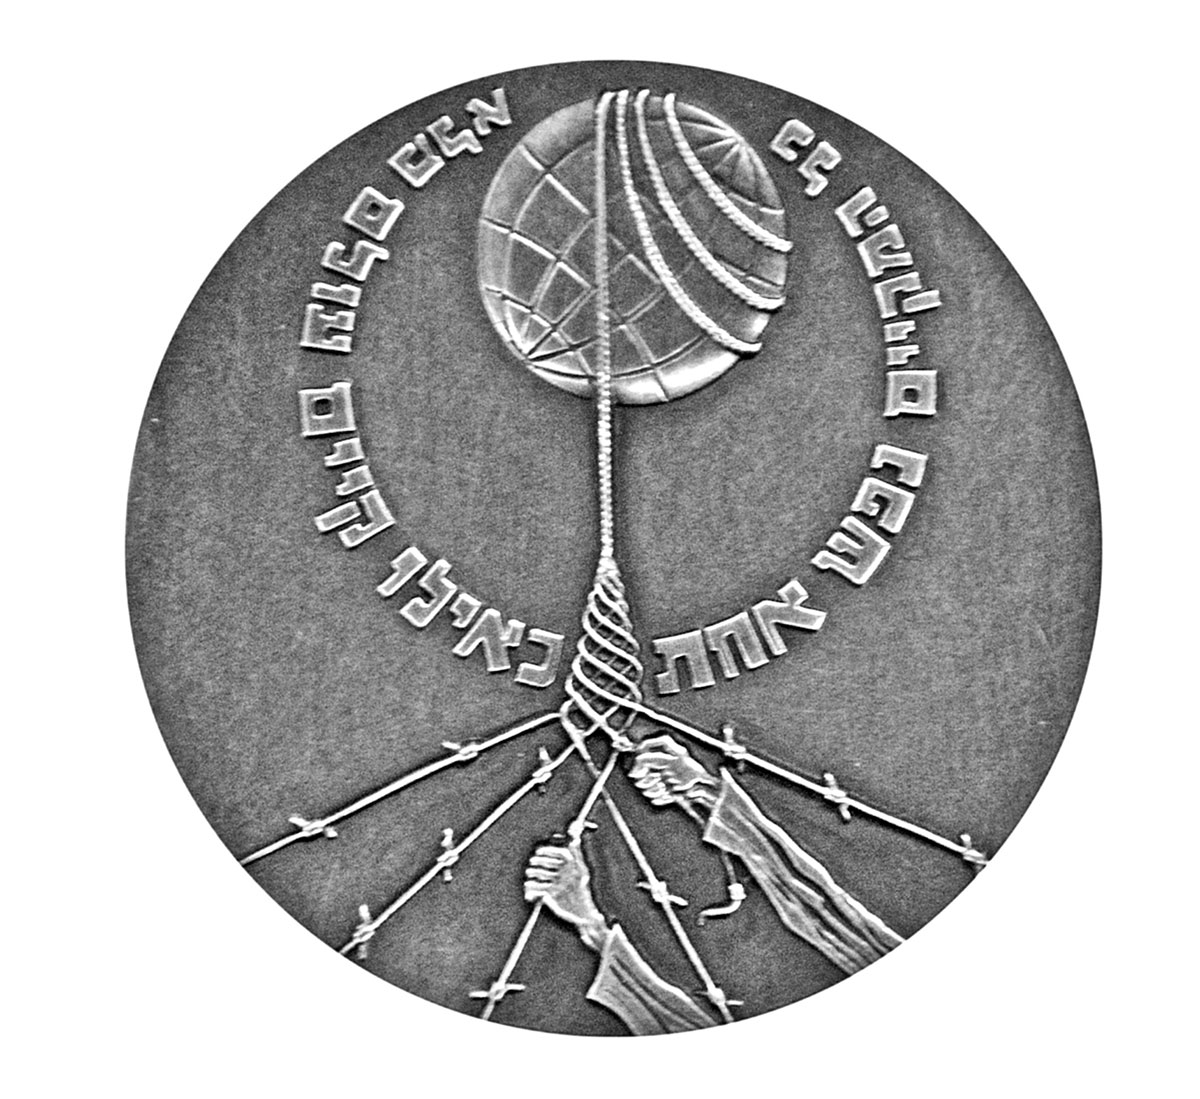 The medal of the Righteous. Reverse